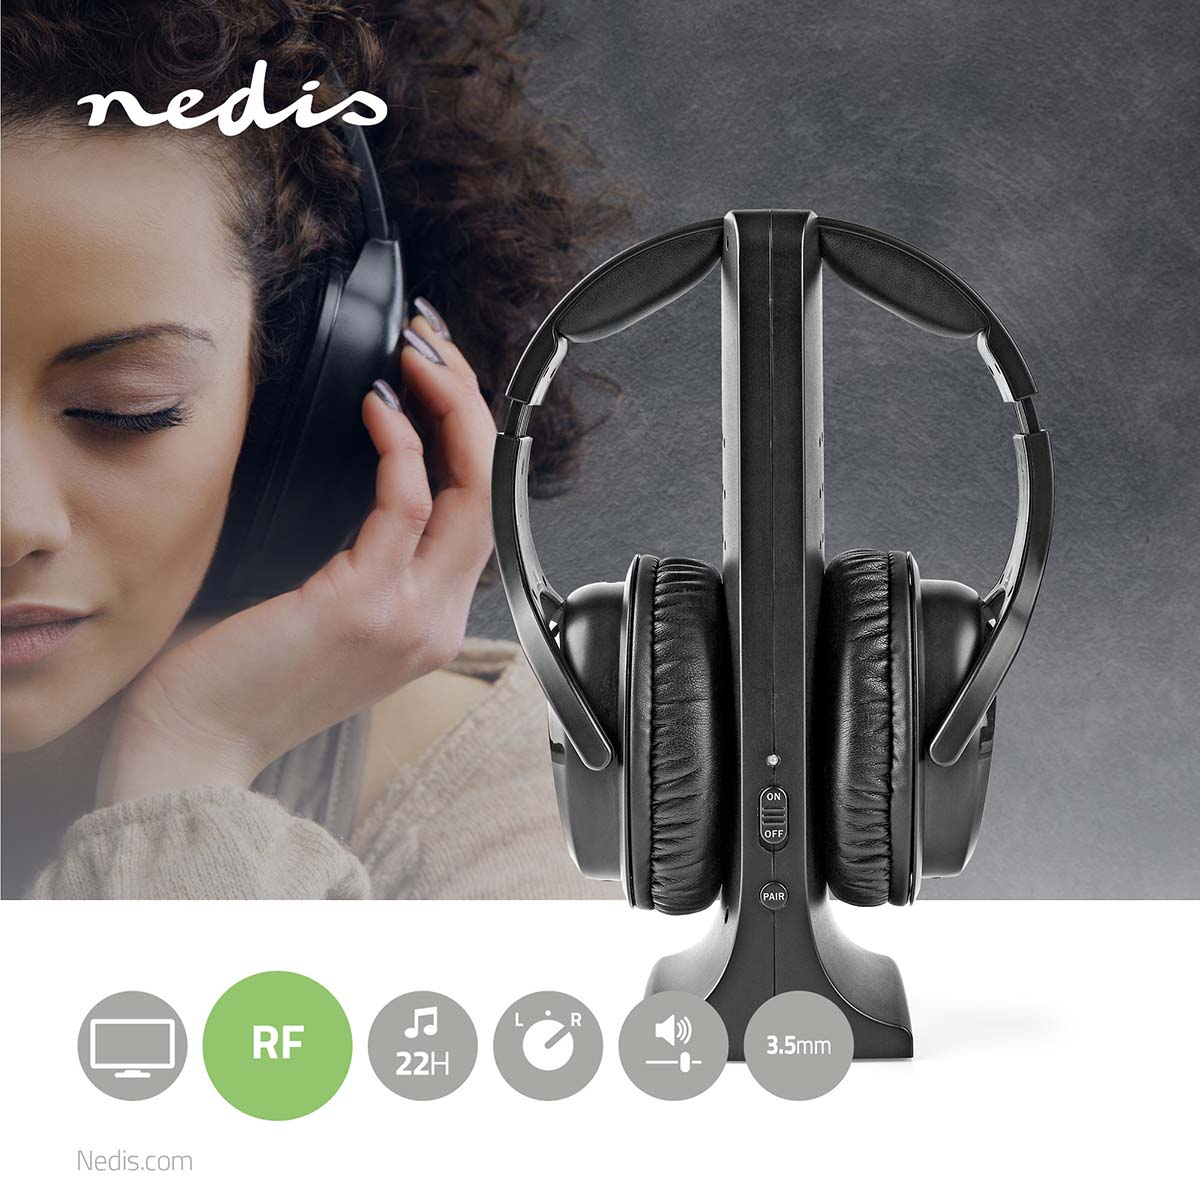 Wireless Tv Headphones Rf Over Ear Battery Play Time Up To 22 Hours